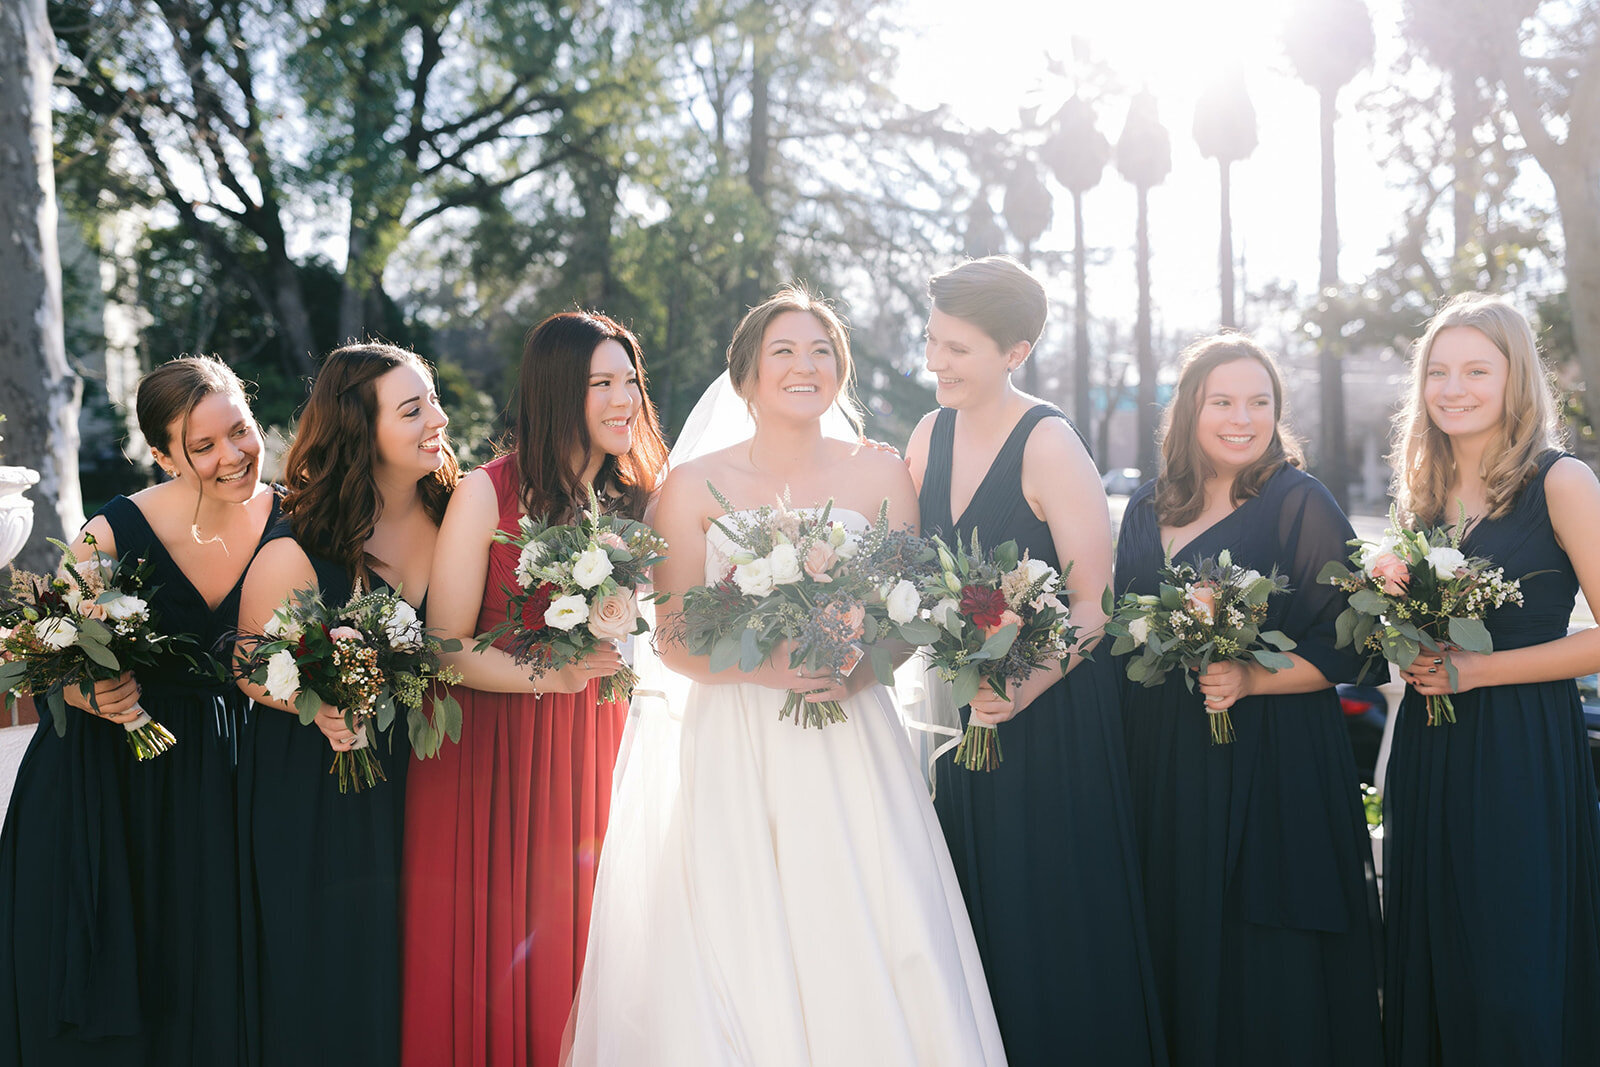 A bride and her bridesmaids giggling outside of the Pavilion before the ceremony is to begin.